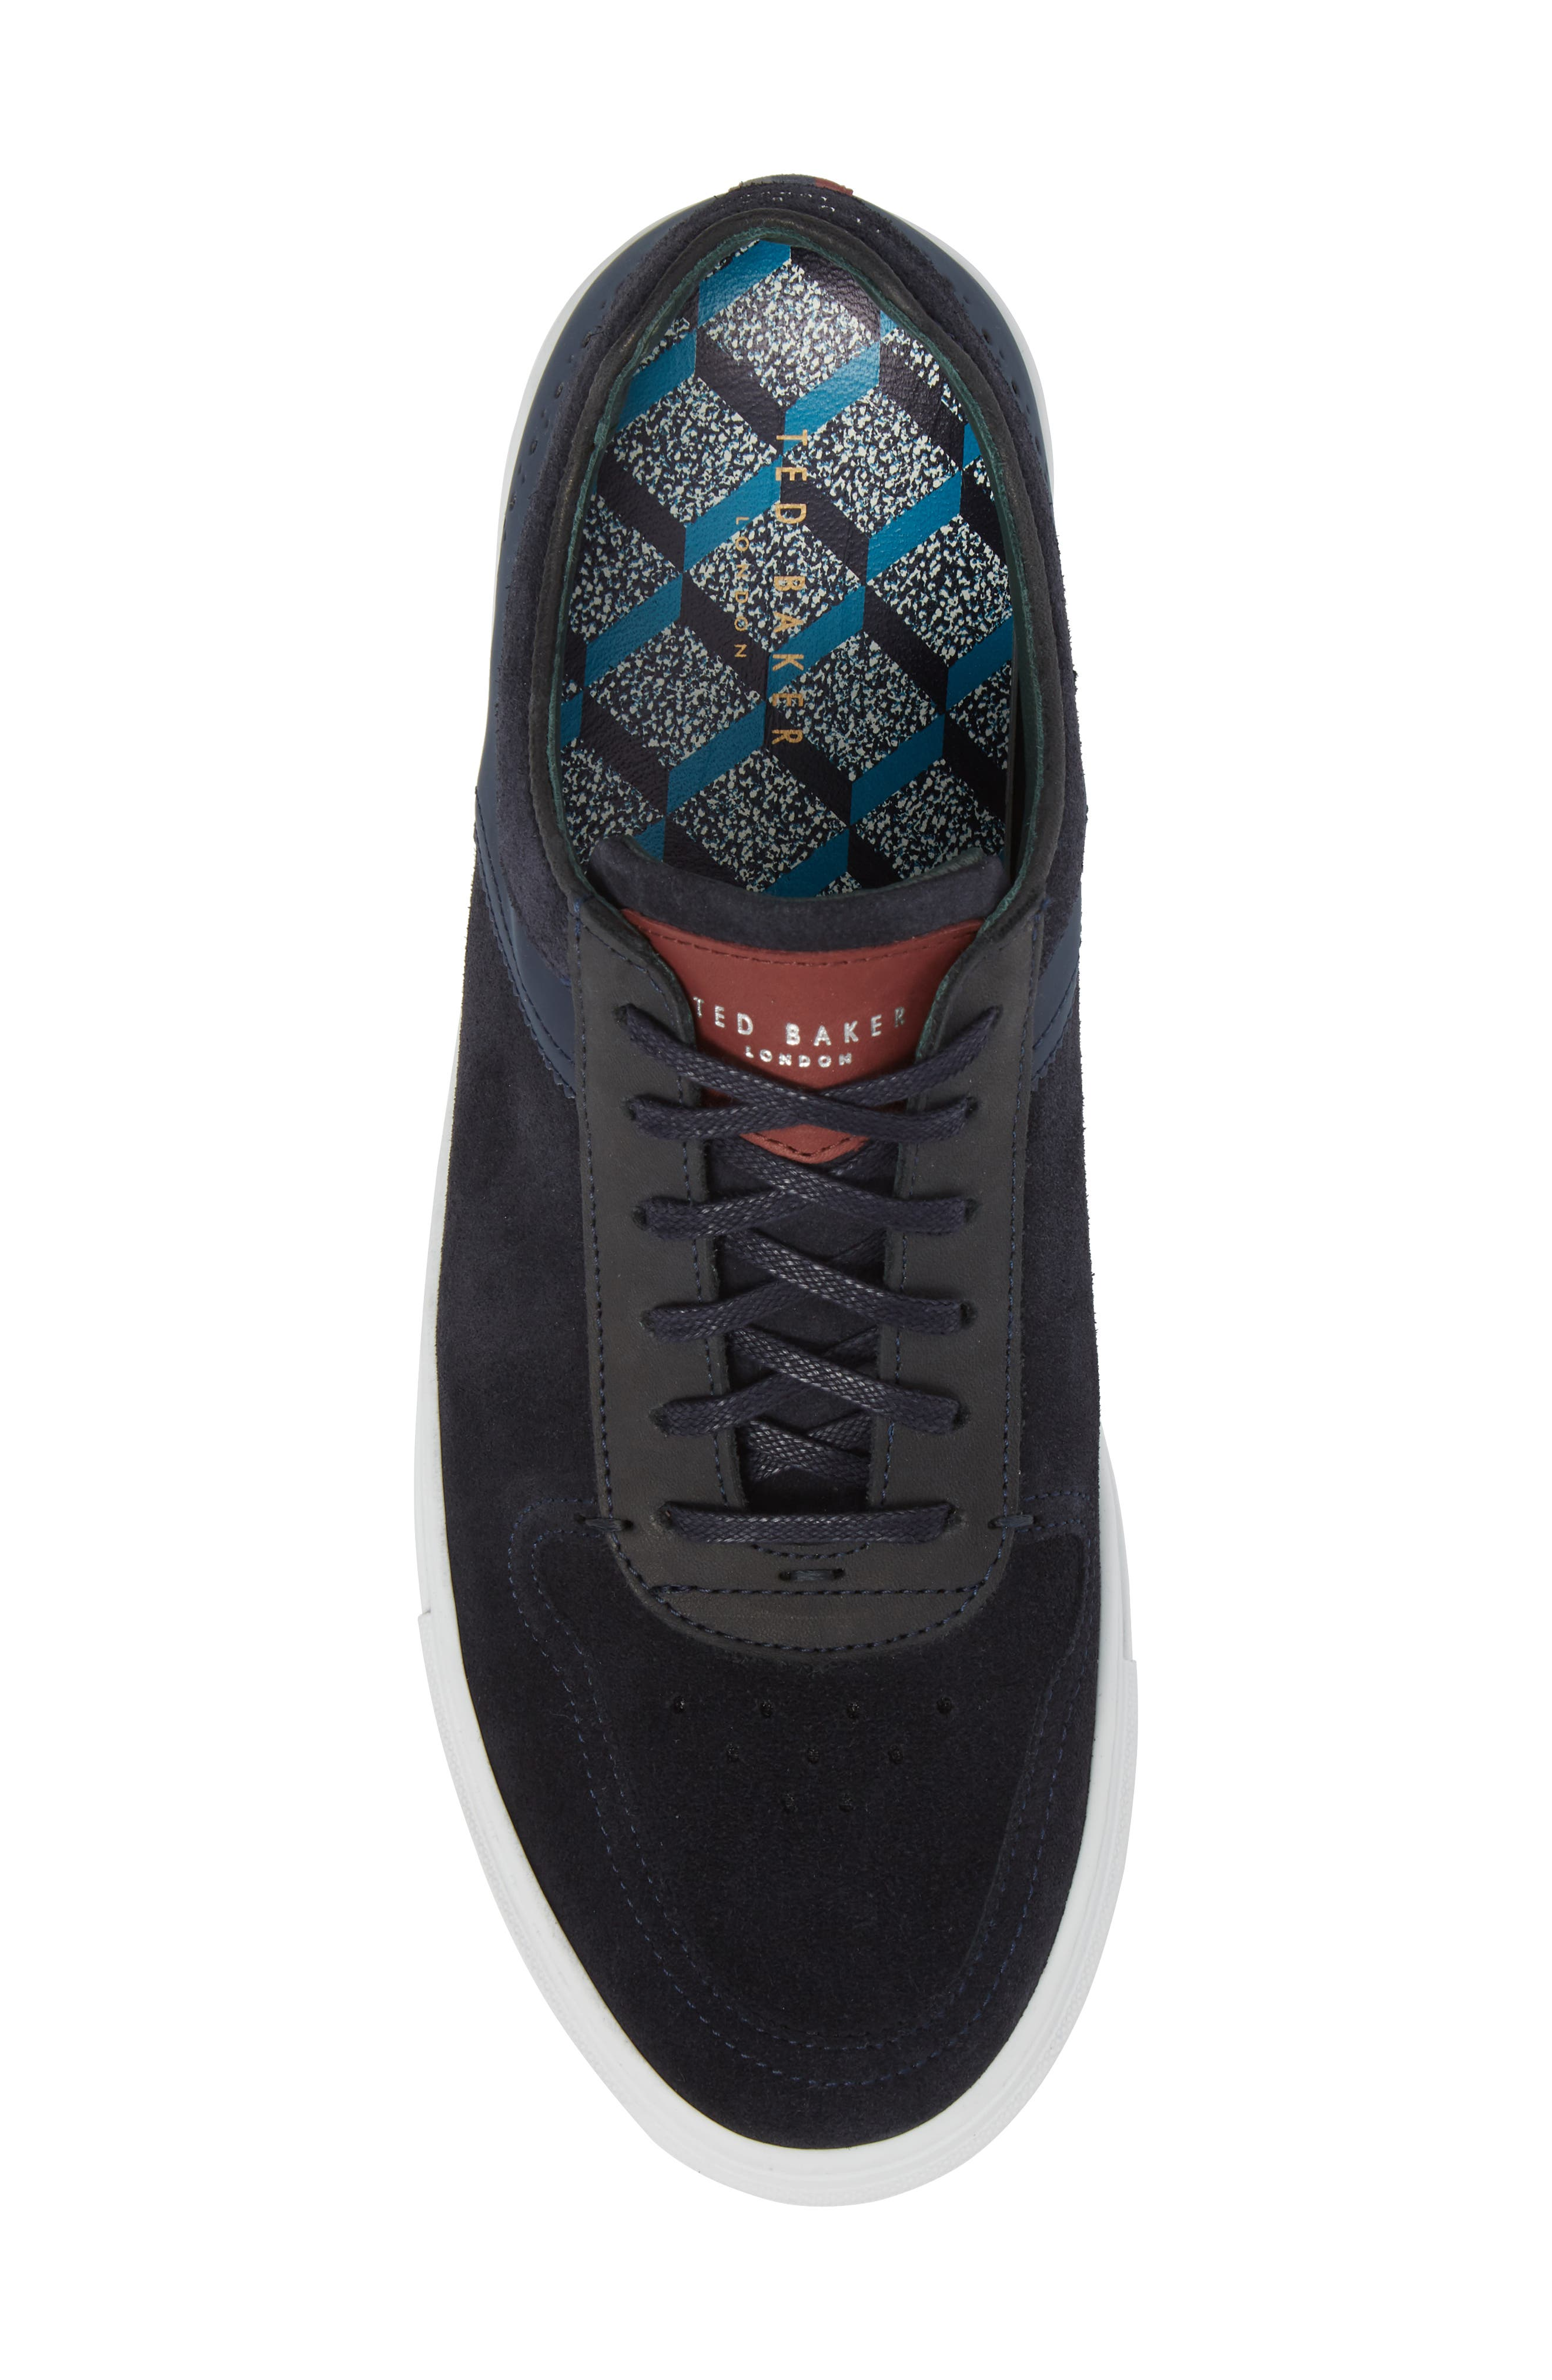 Burall Sneaker,                             Alternate thumbnail 5, color,                             Dark Blue Suede/ Textile